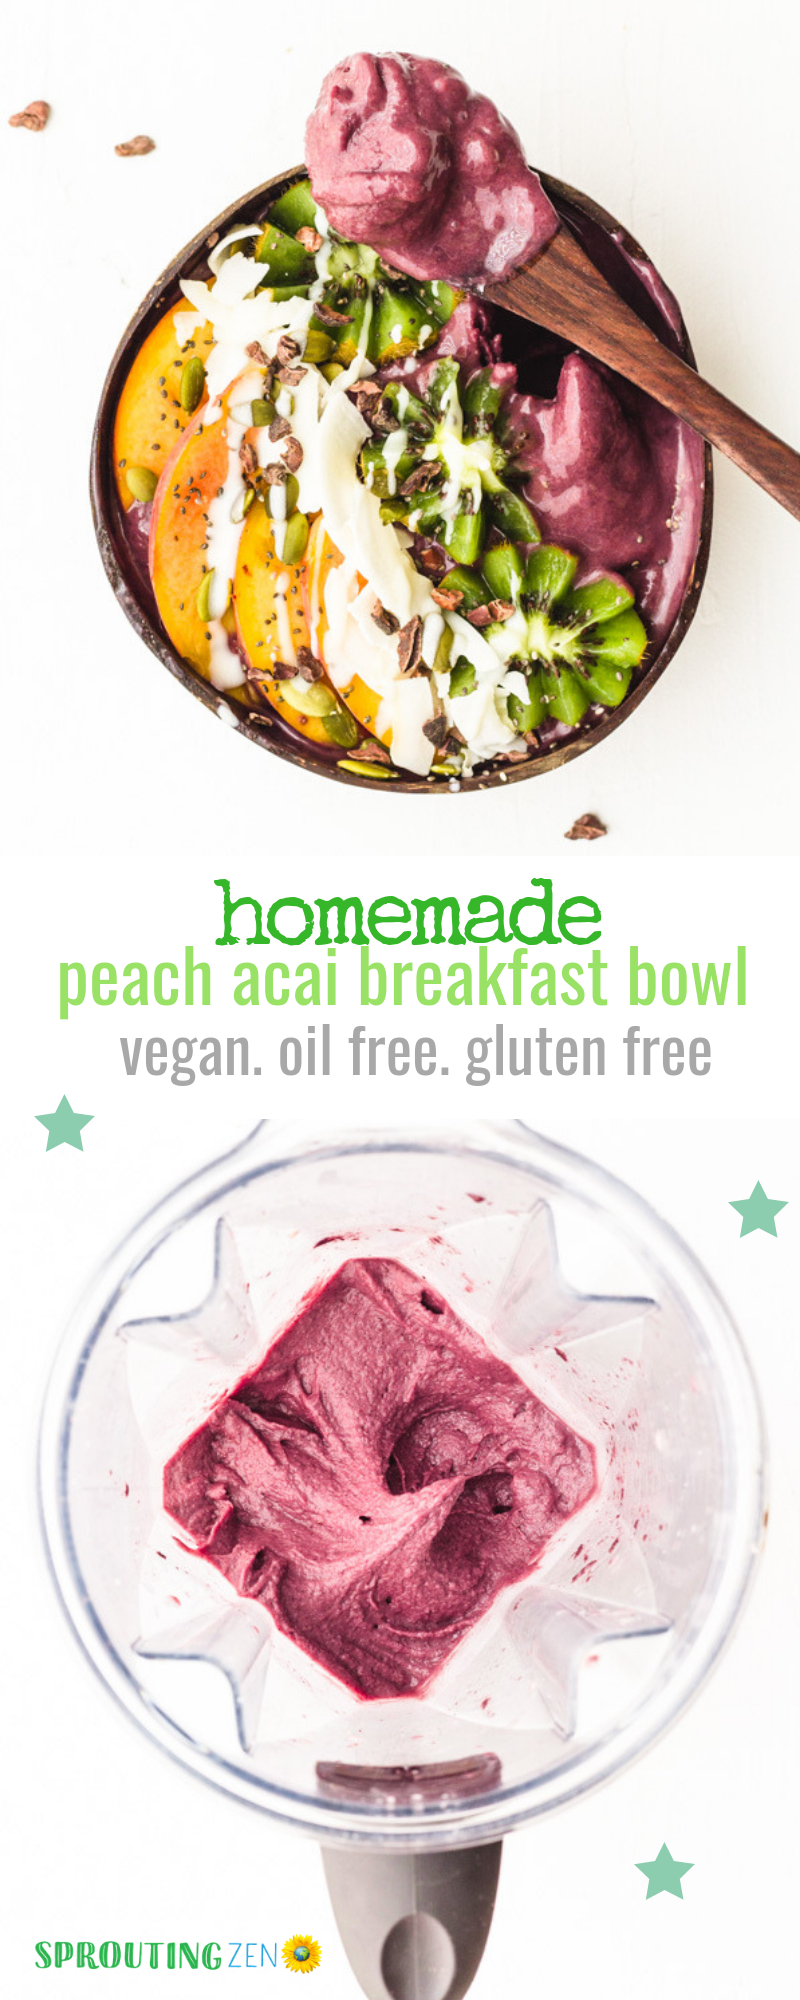 The best breakfast meal EVER! Homemade Peach Acai Bowl - so delicious! #vegan #plantbased #breakfast | Sprouting Zen